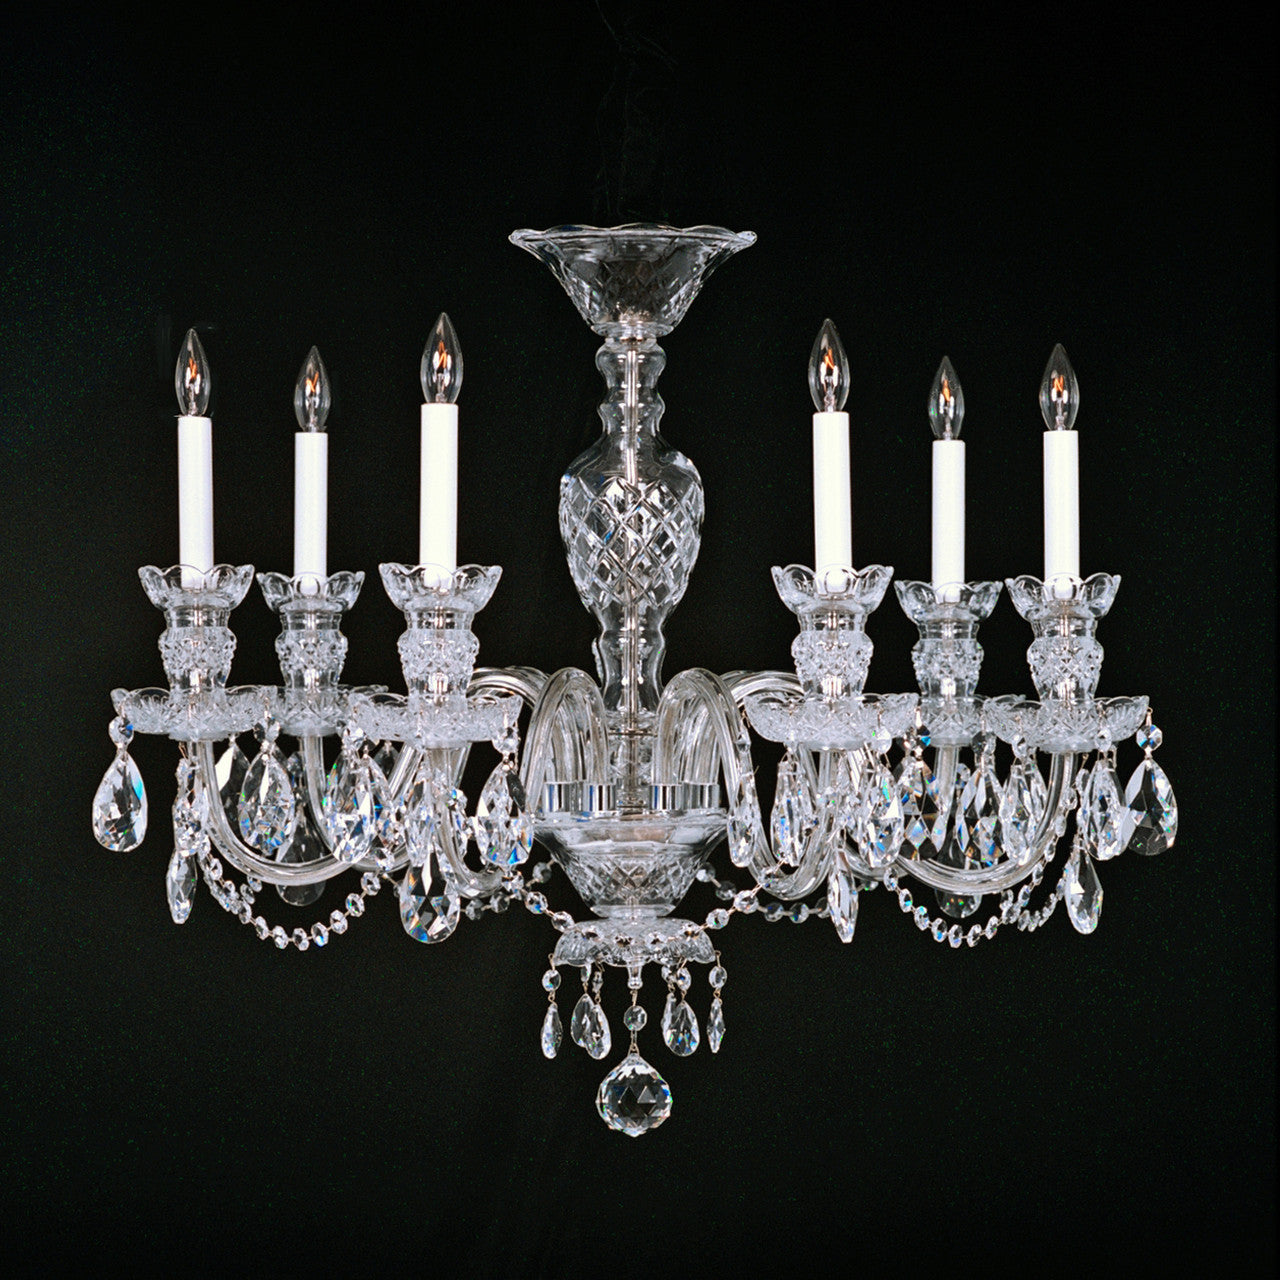 Crystal Chandelier Chesapeake T Chesapeake T